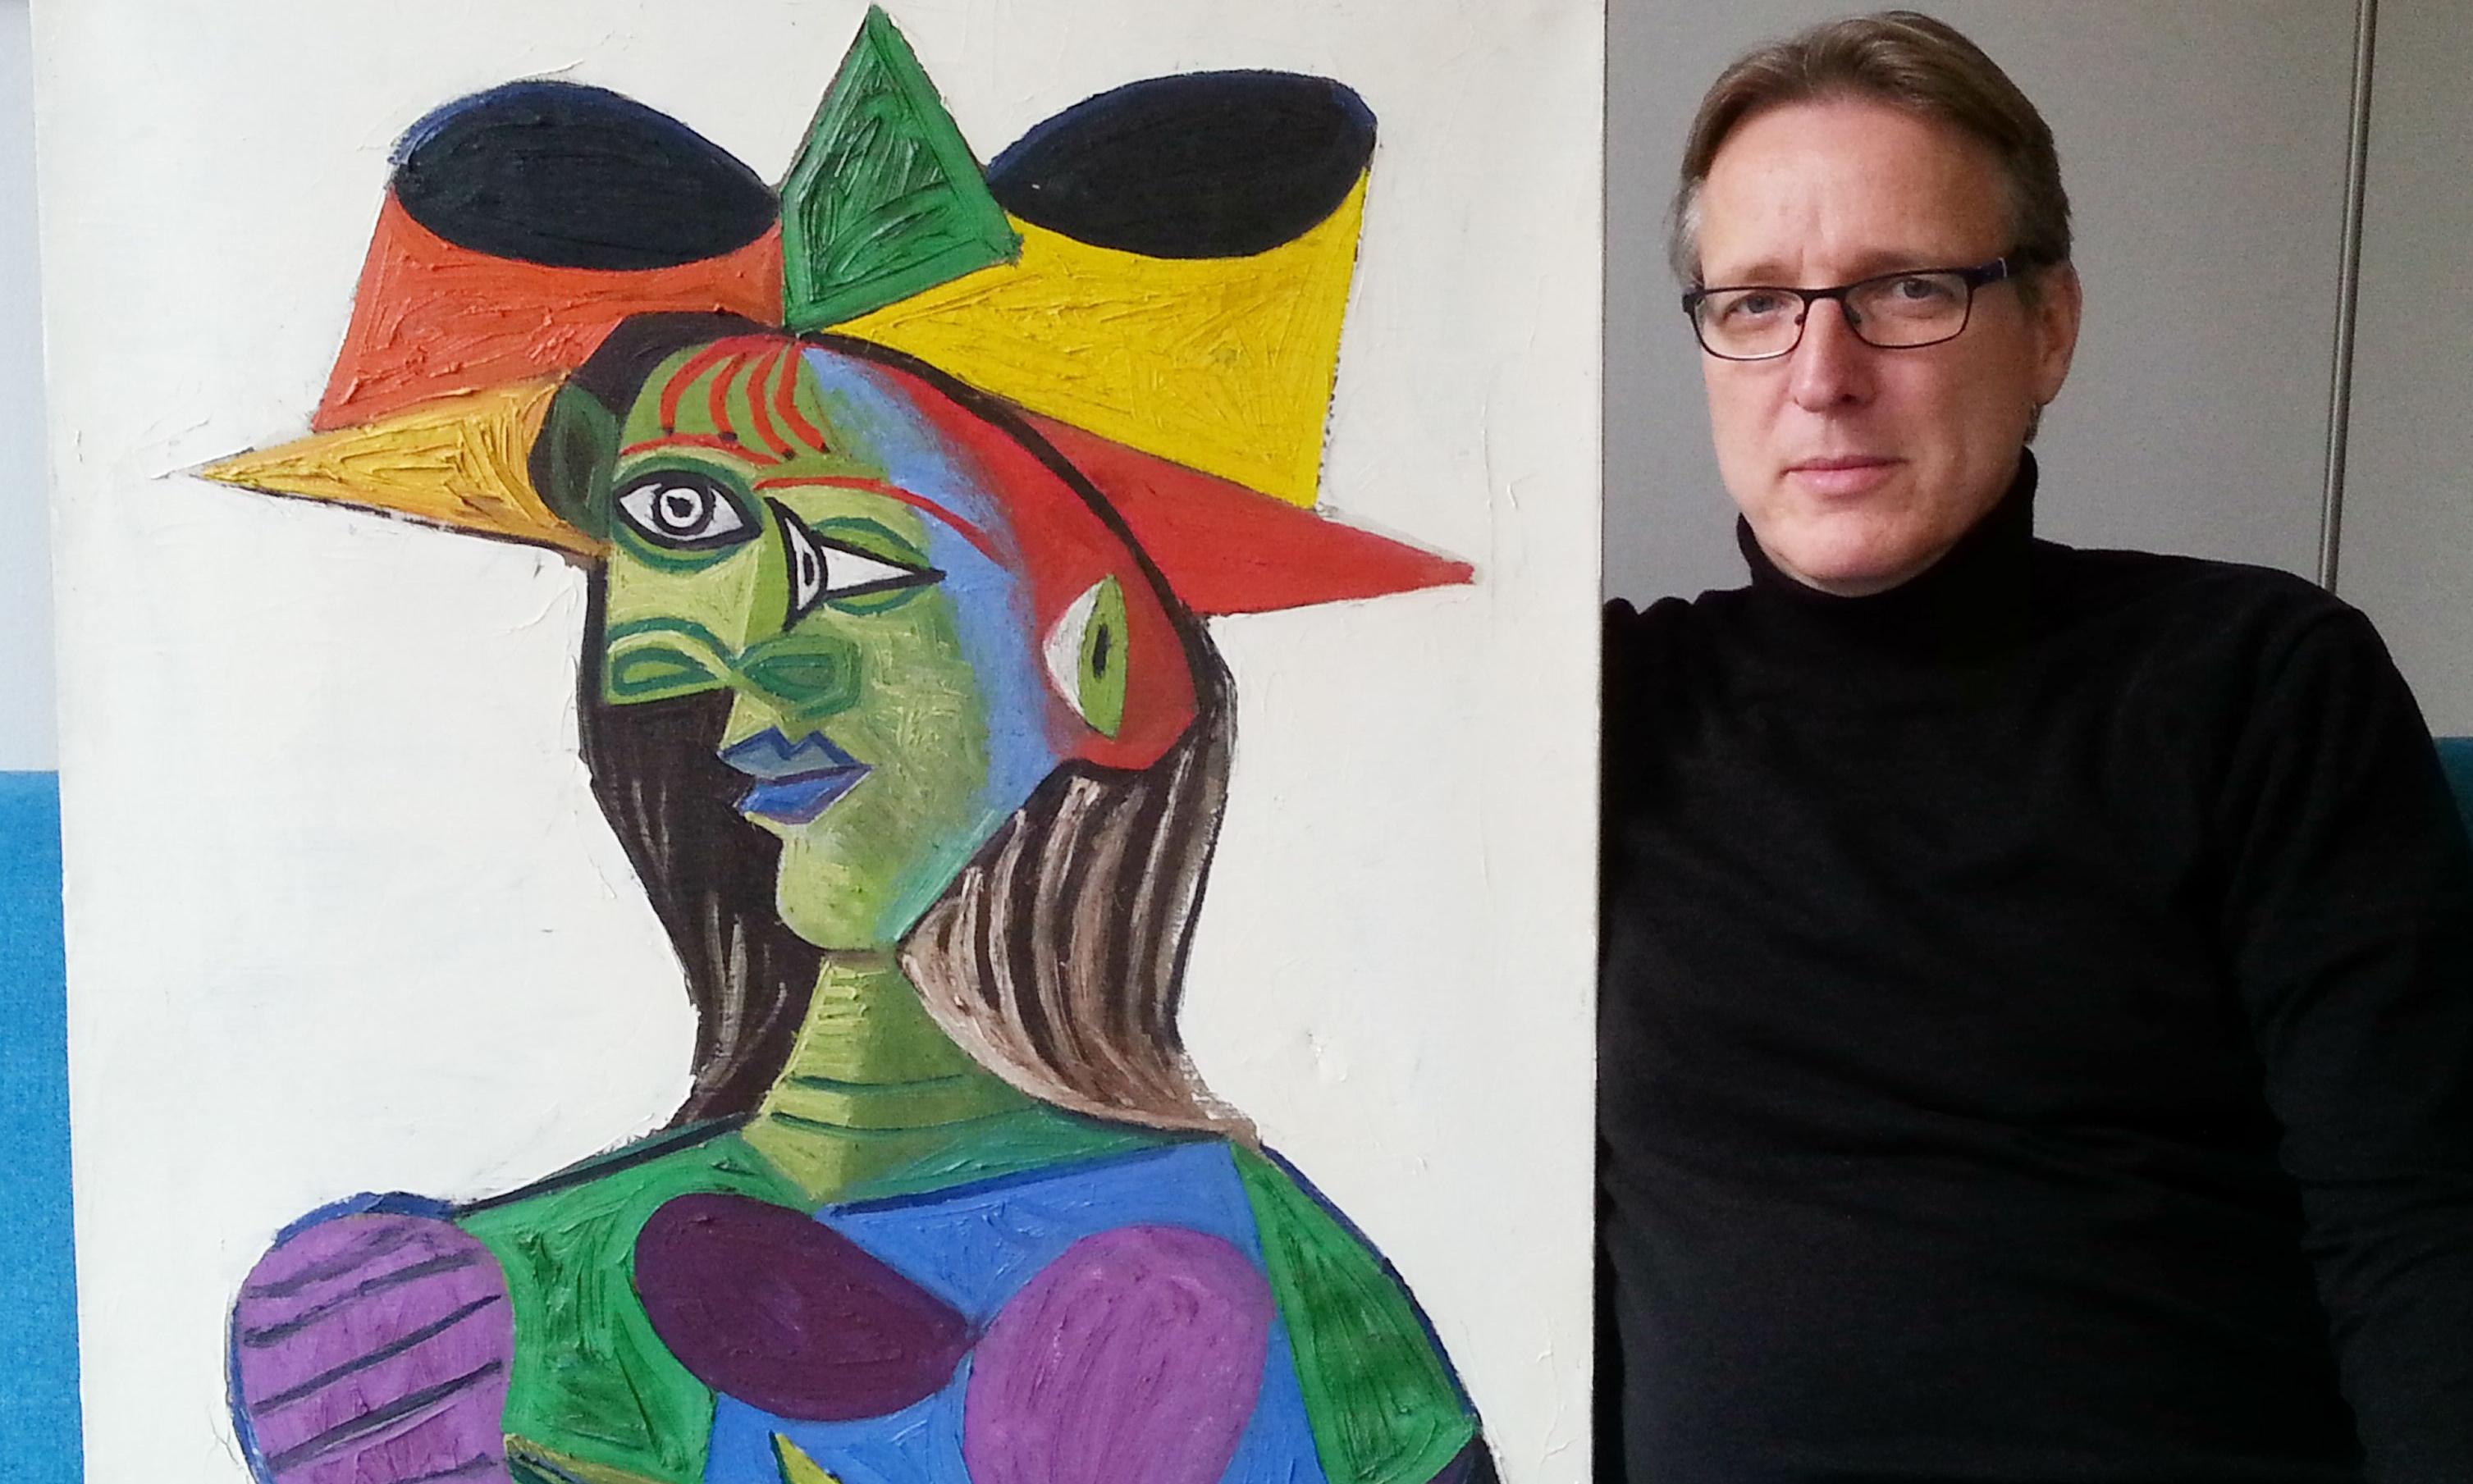 Dutch art detective recovers stolen Picasso painting after 20 years